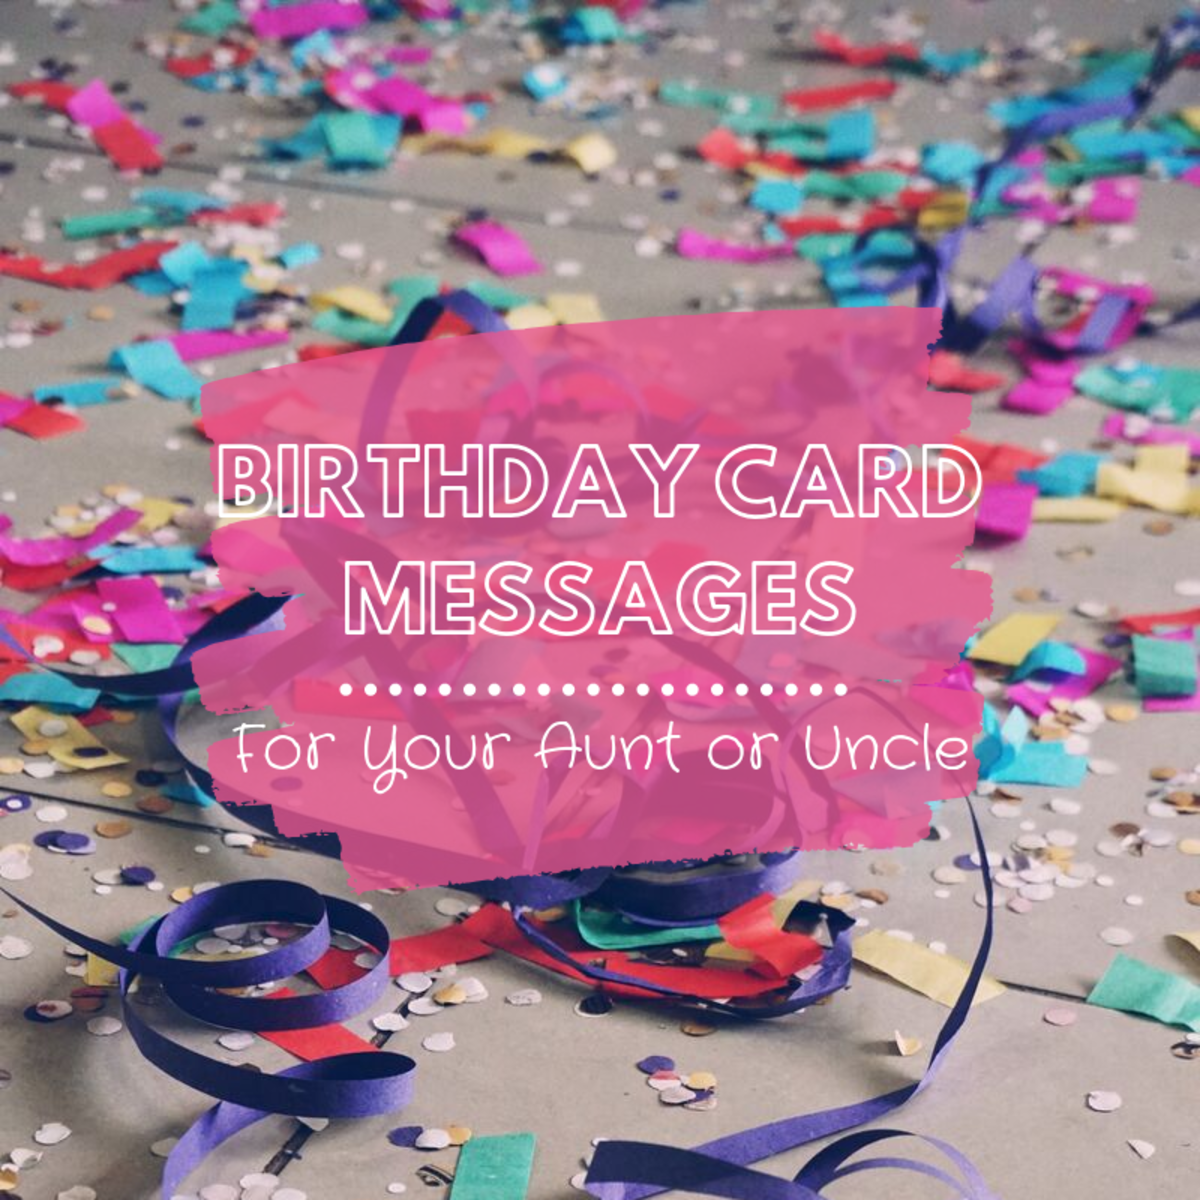 Birthday Messages to Write in a Card for Your Aunt or Uncle